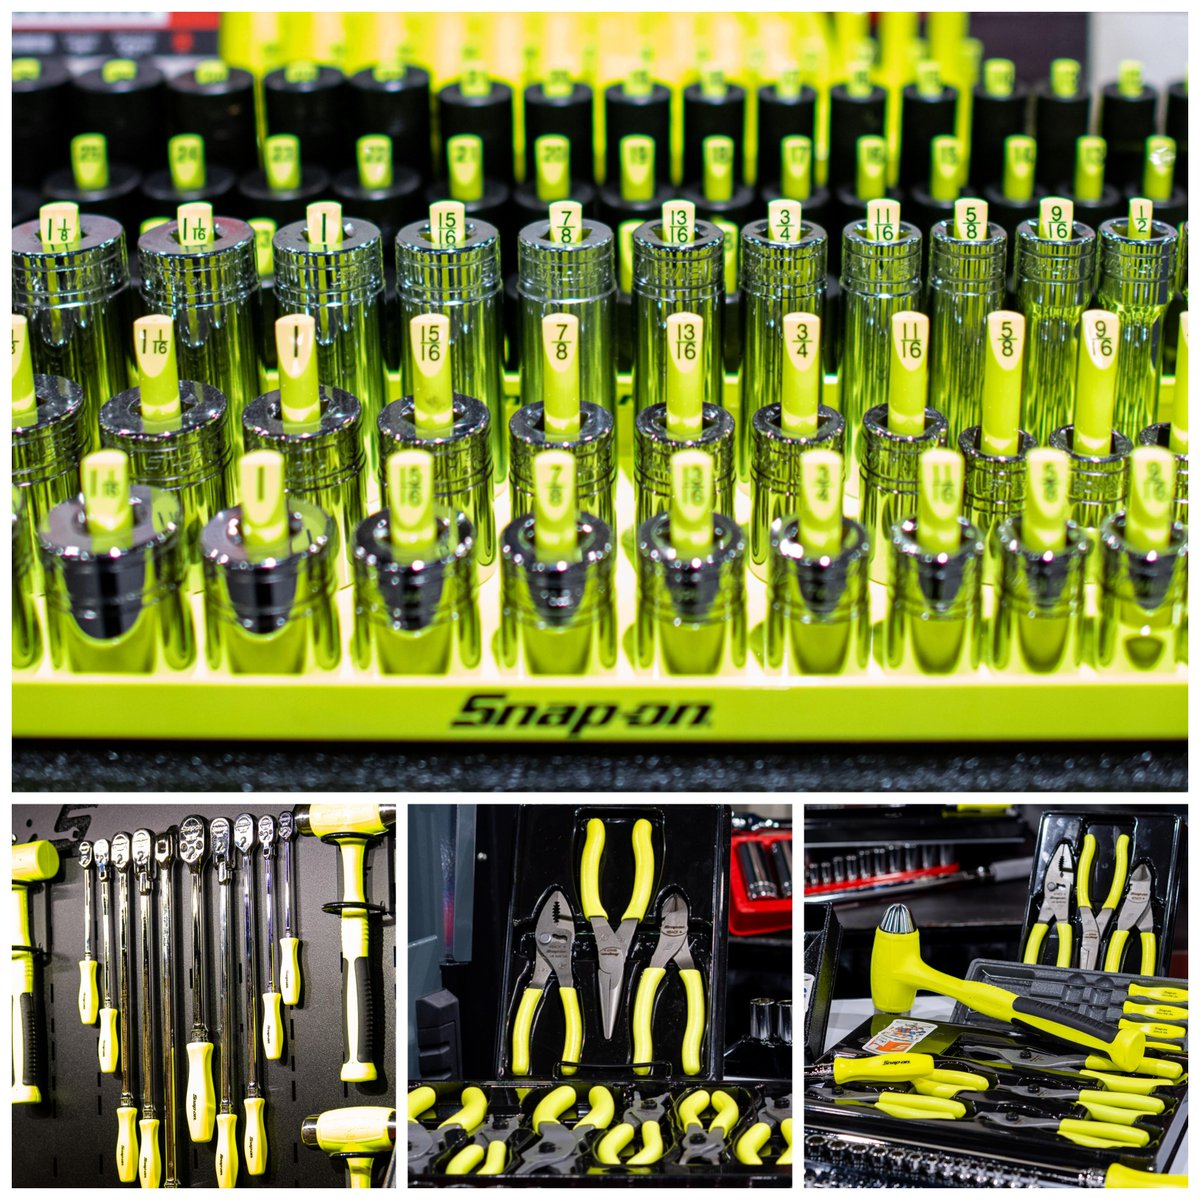 Snap-on Tools (@Snapon_Tools) | Twitter